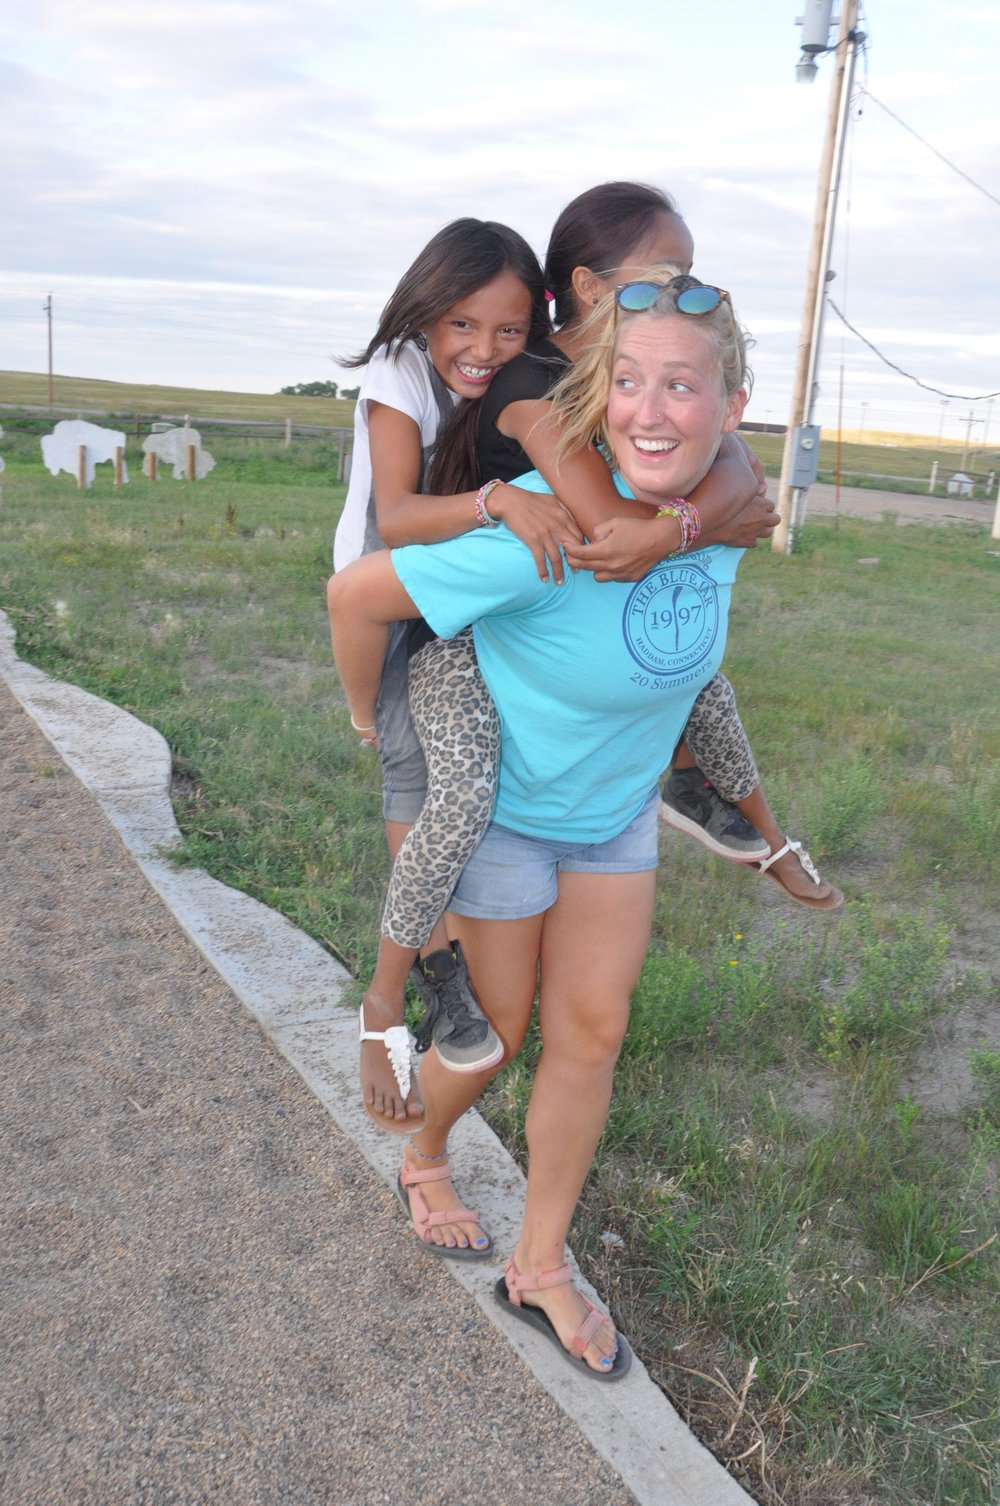 Jessi, always a leader of piggy back rides and a friendly face at camp!